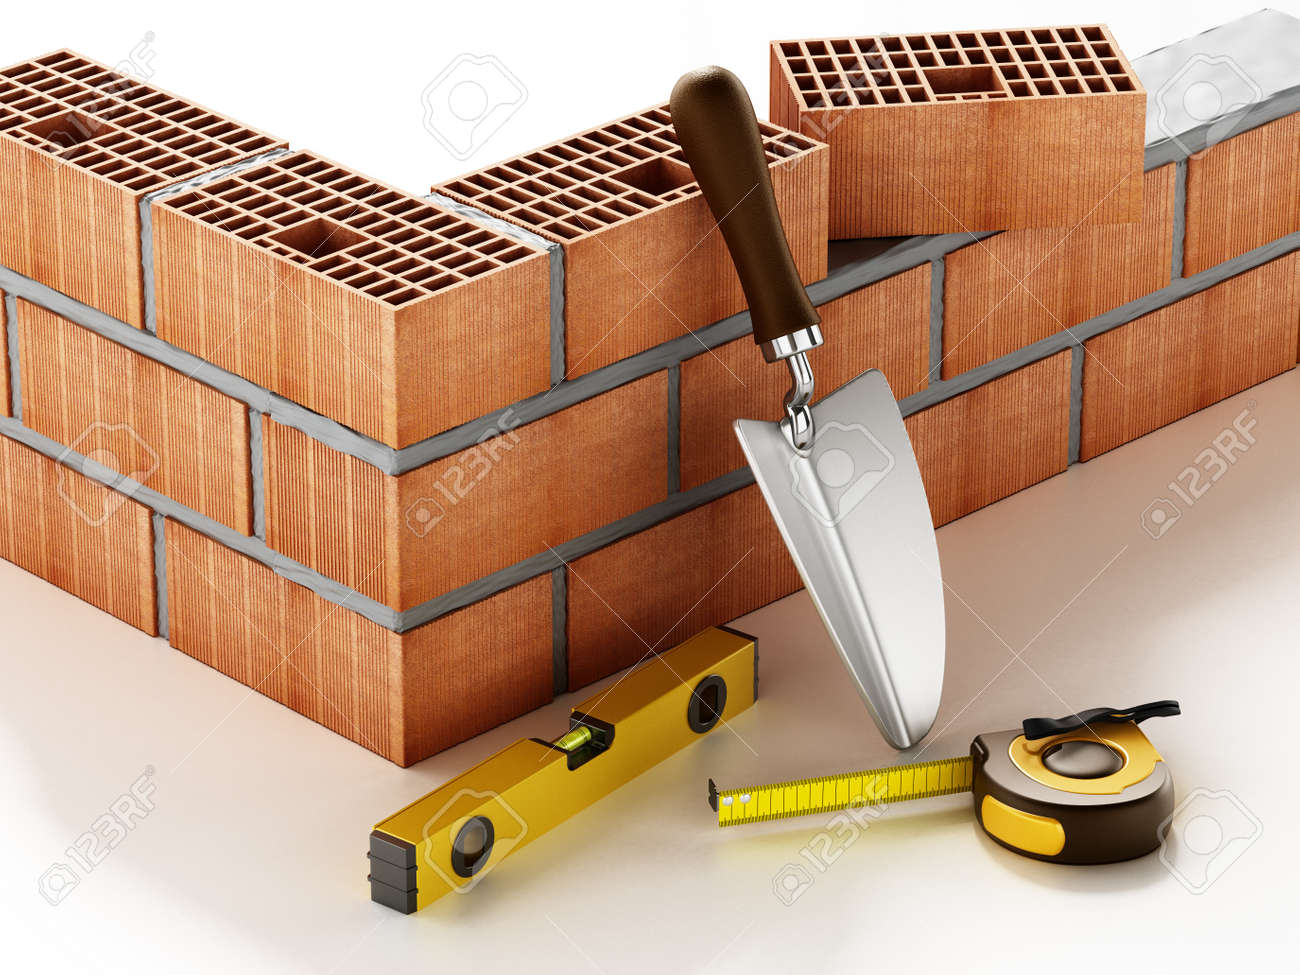 Laid bricks and construction tools isolated on white background. 3D illustration. - 172440208